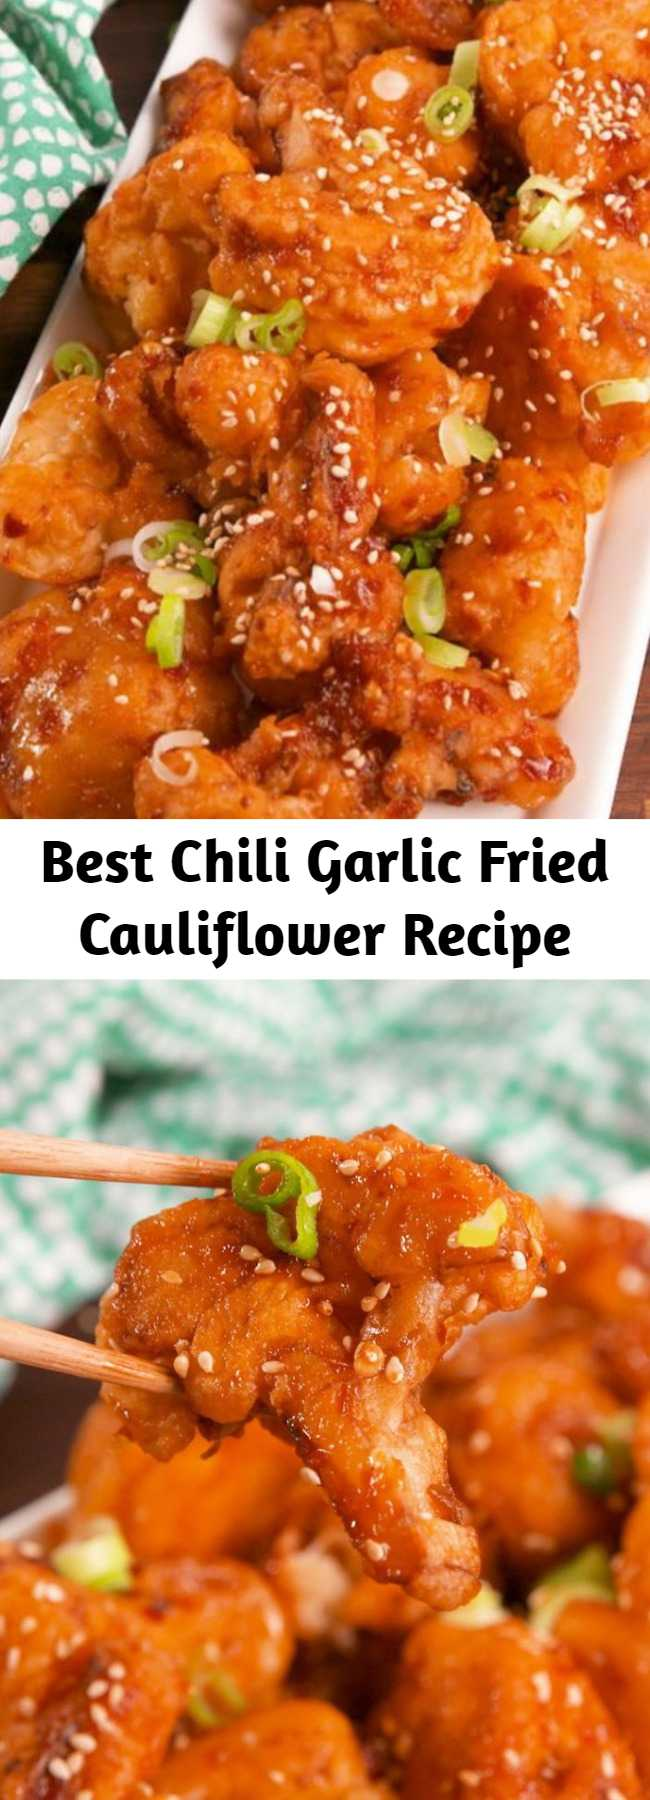 Best Chili Garlic Fried Cauliflower Recipe - The cauliflower florets are battered in somewhat of a tempura-like batter, which aids in more wing-like crispy coating. Eat it right away! The crunch factor diminishes quickly! #food #easyrecipe #vegetarian #familydinner #dinner